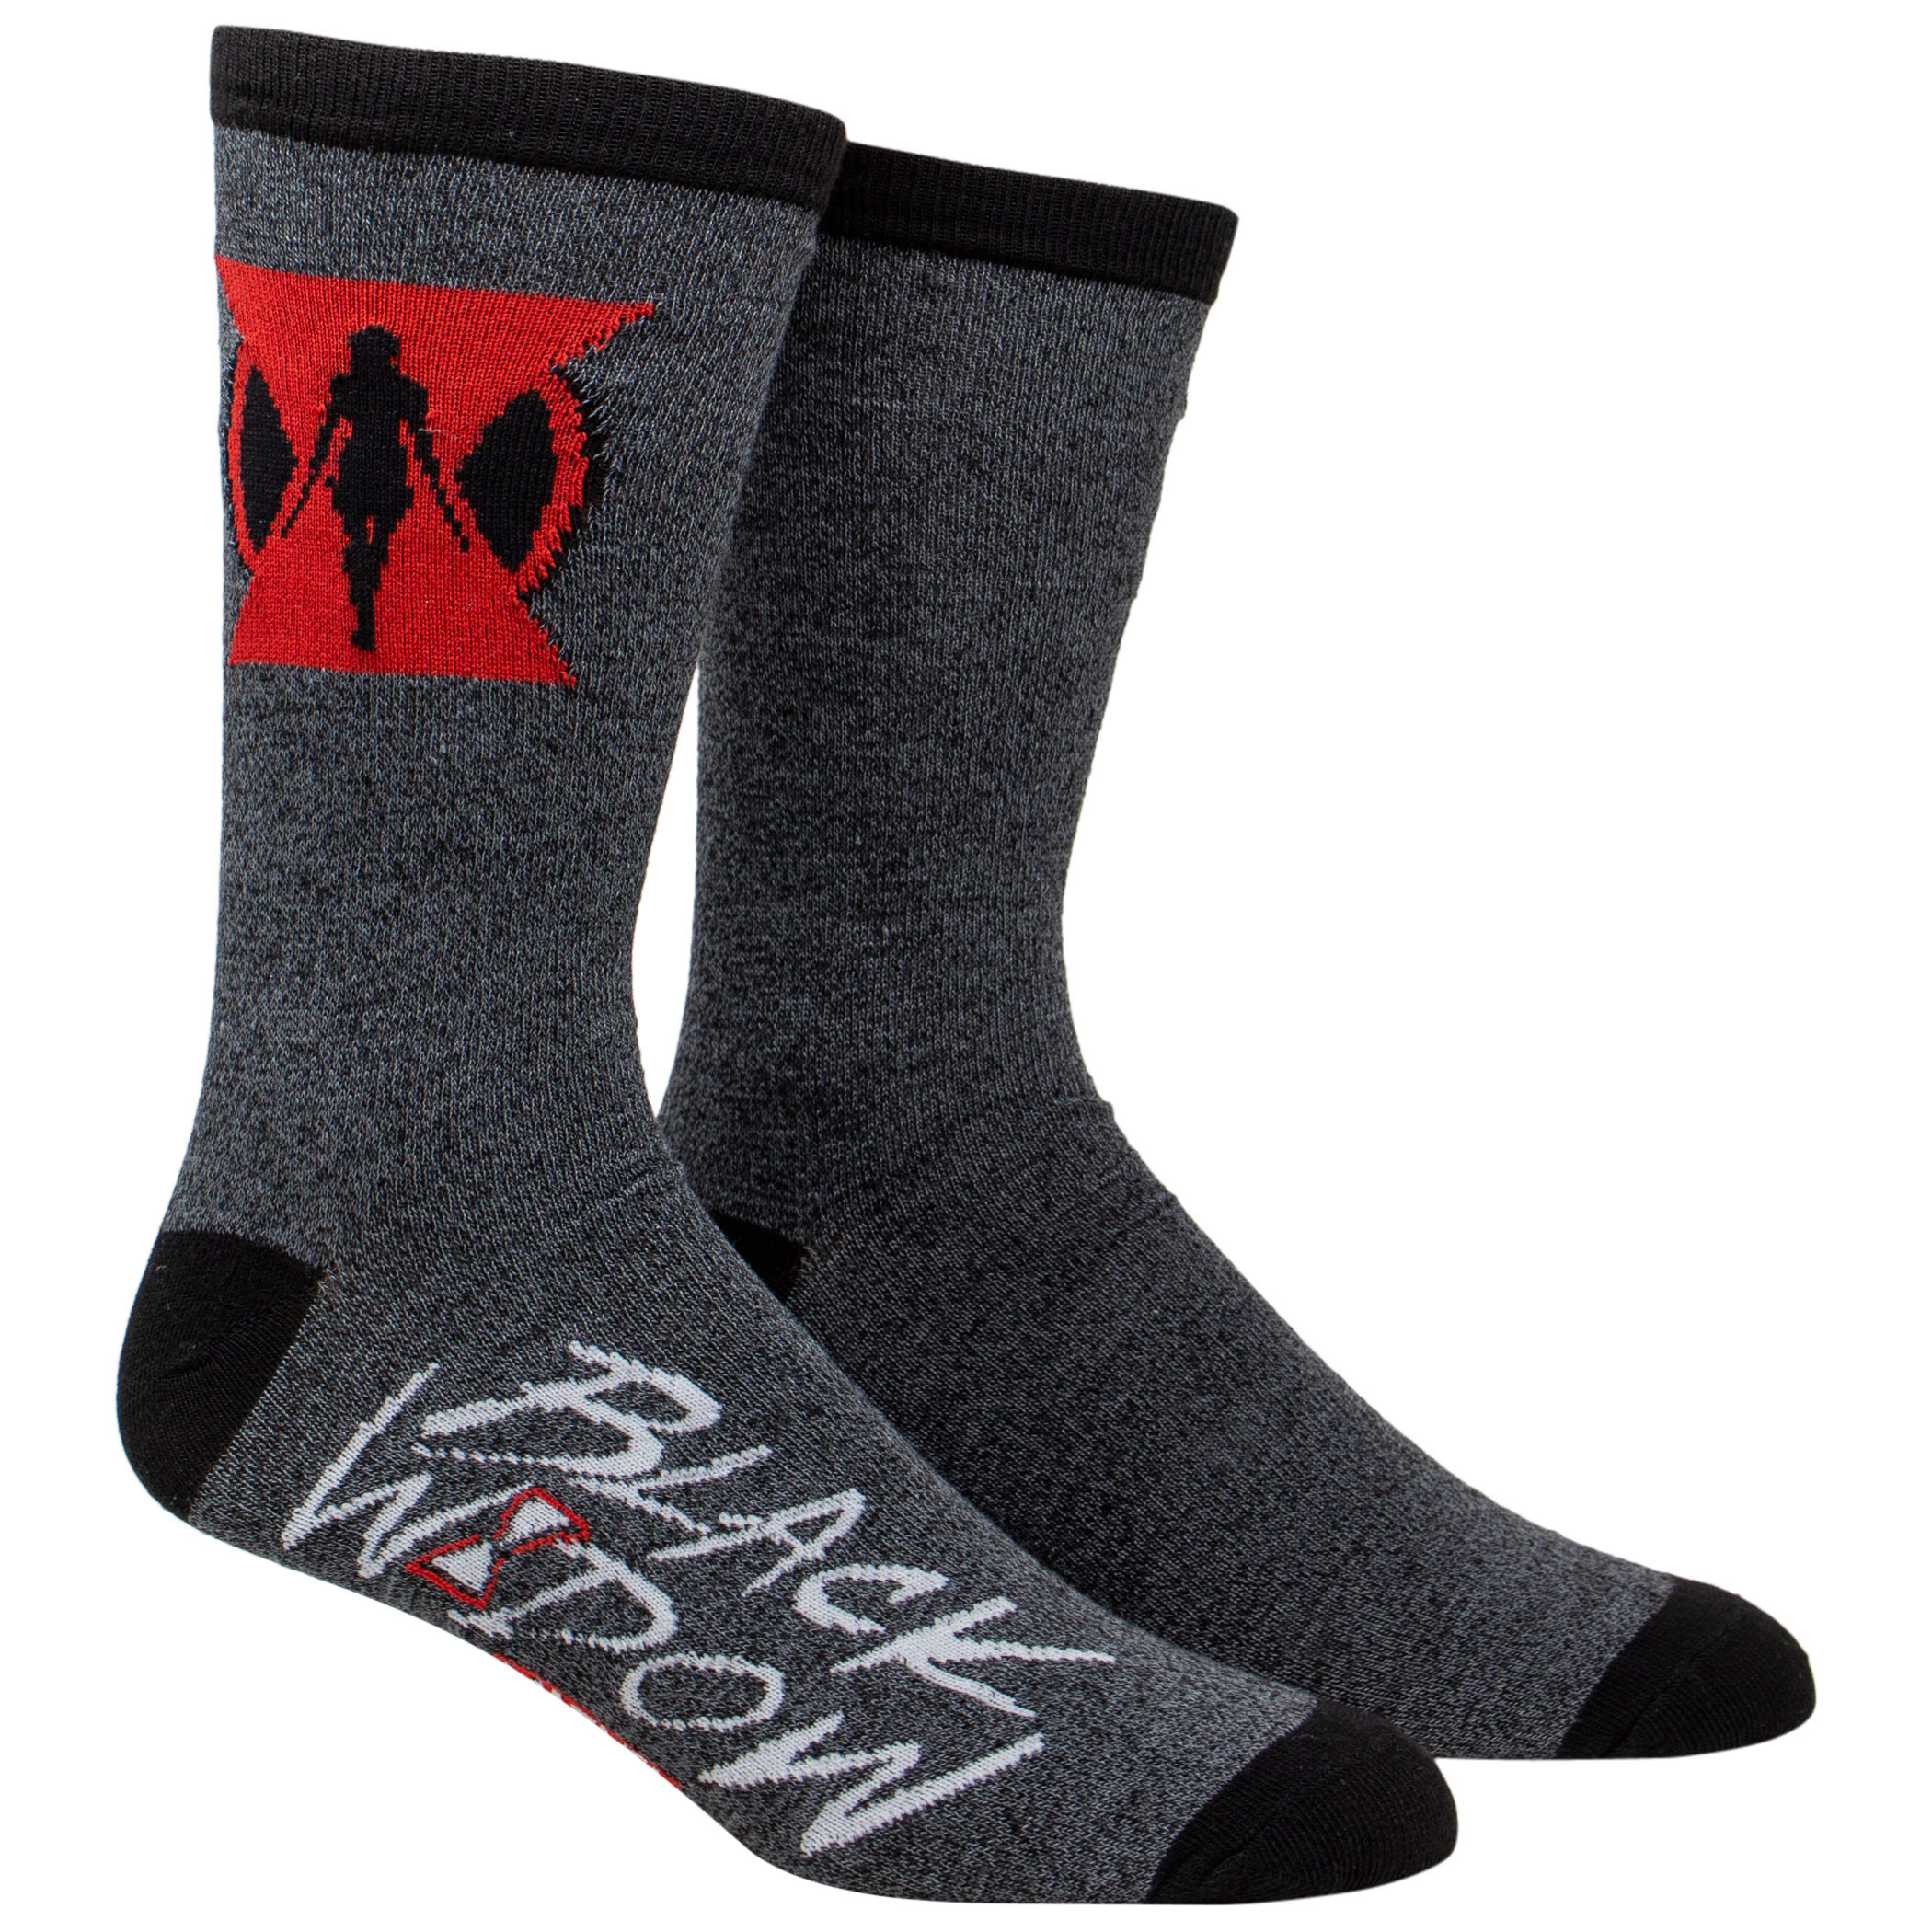 Black Widow Movie Symbol Crew Socks